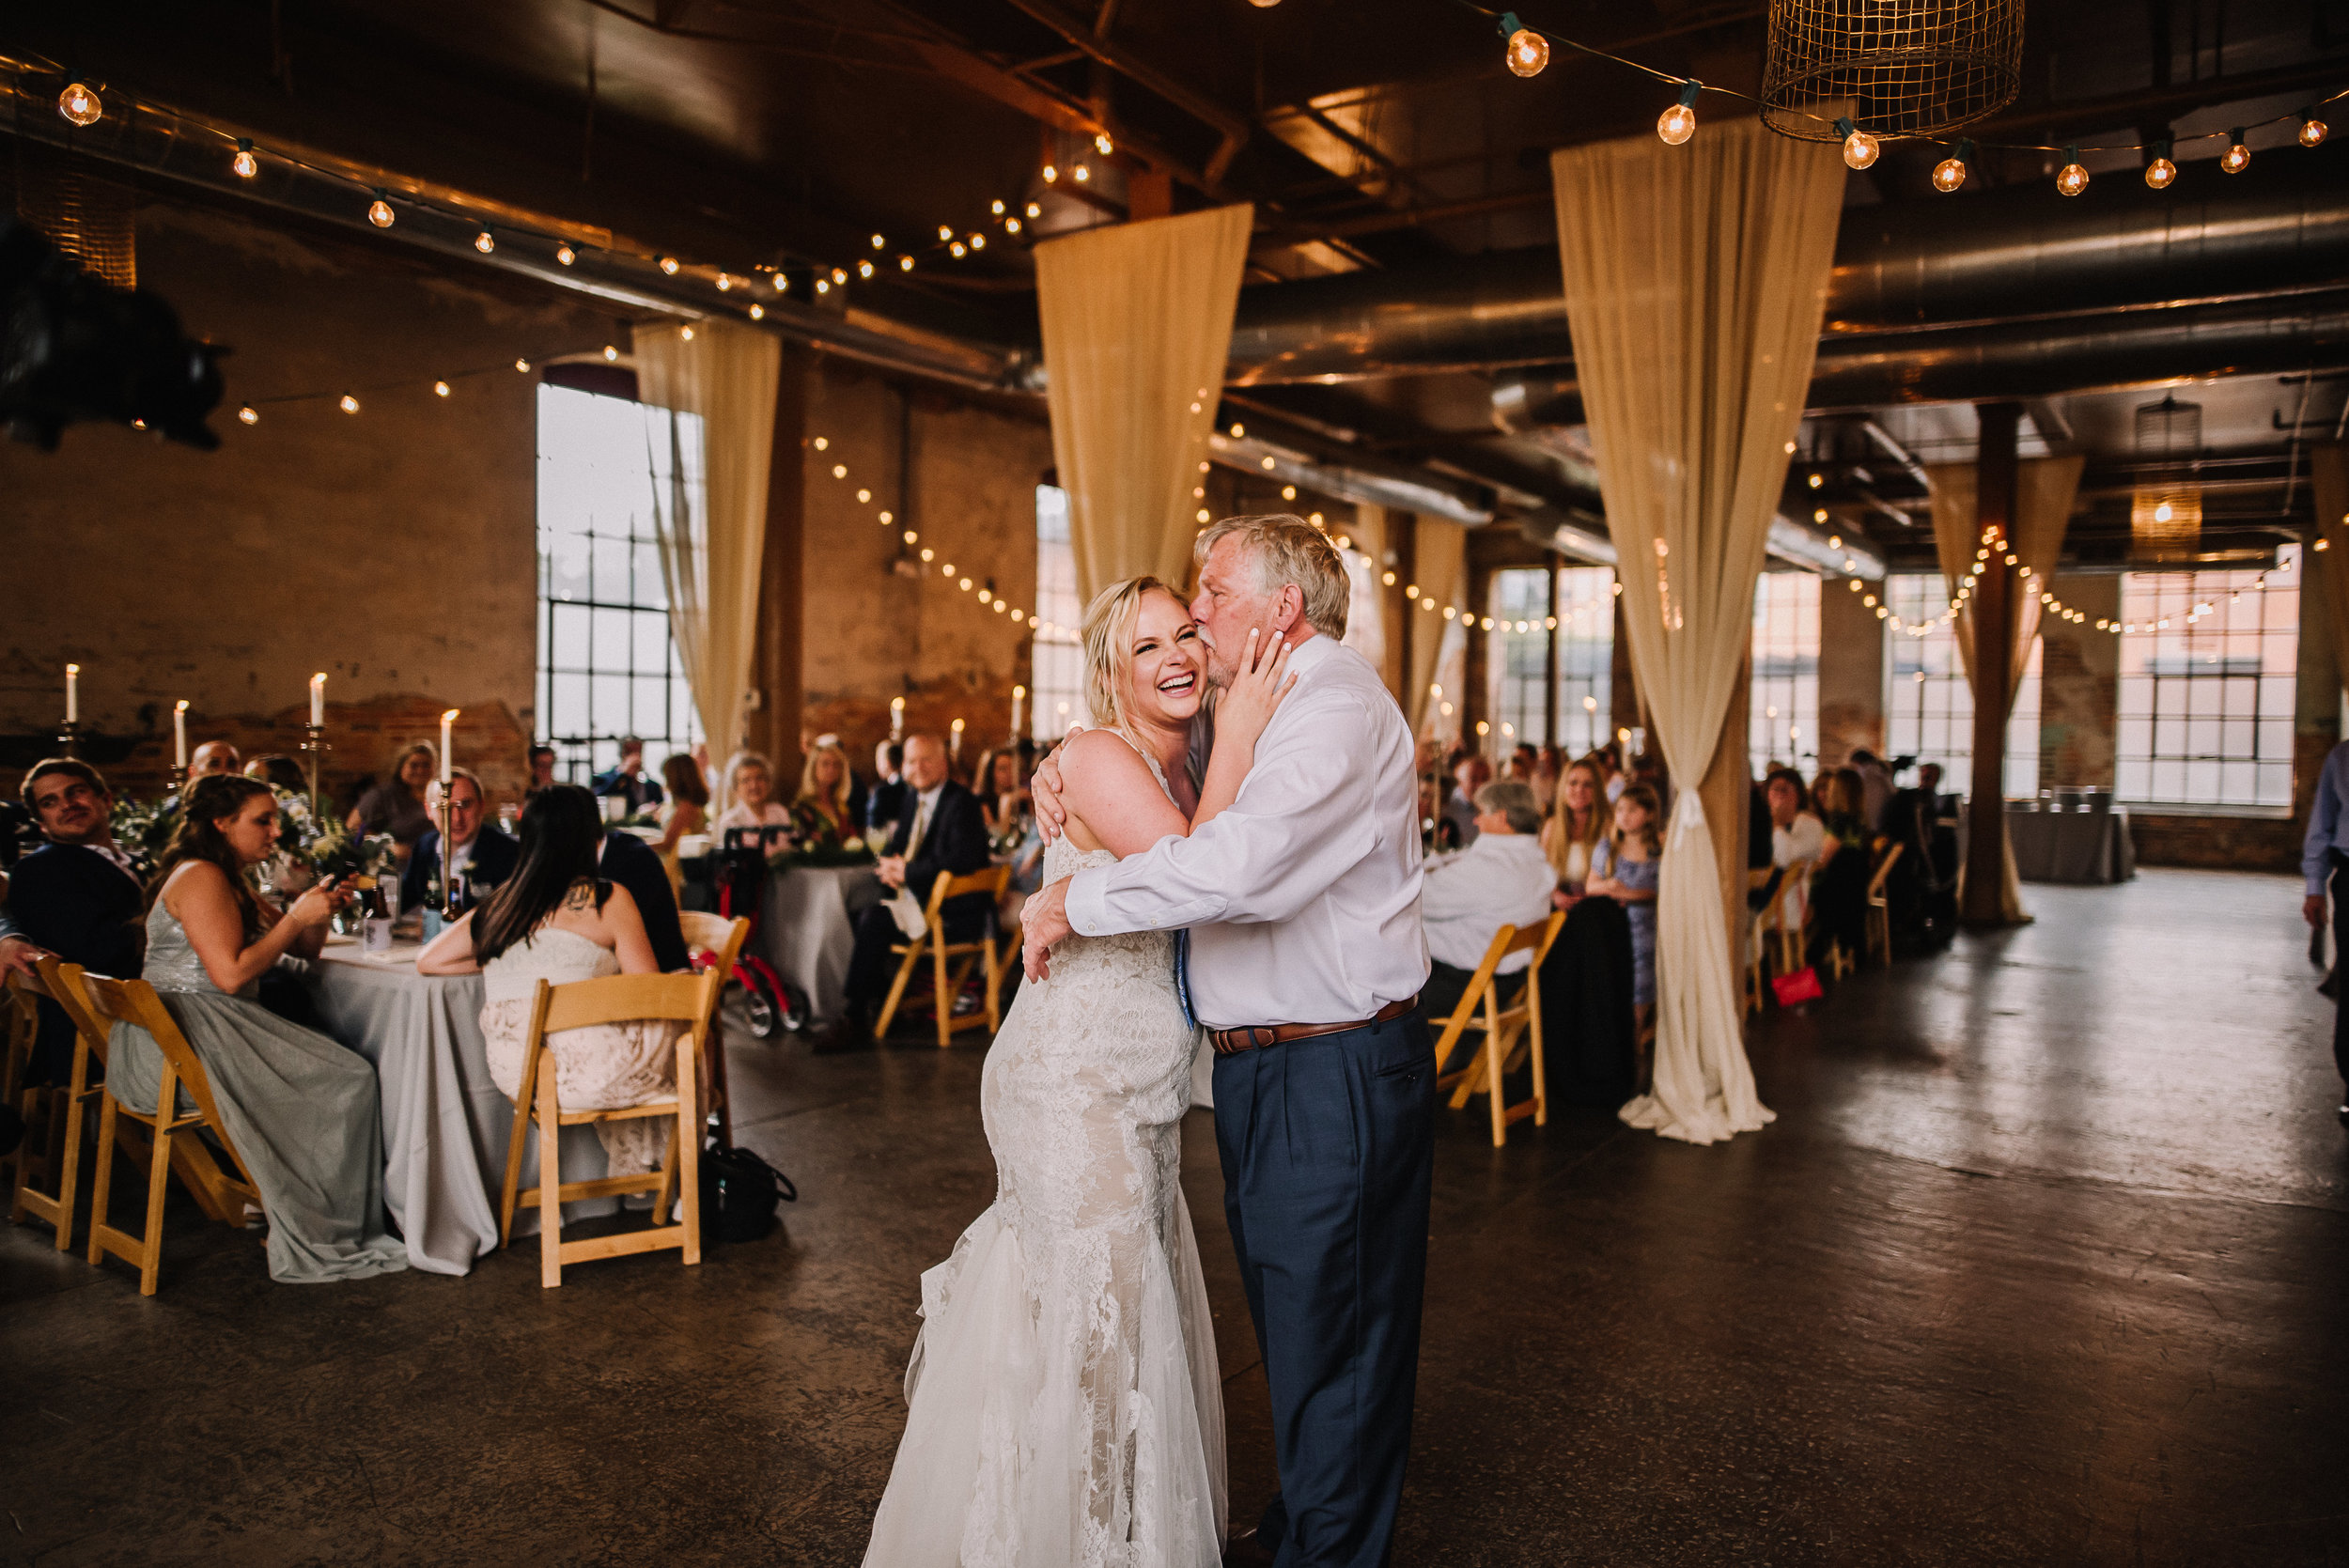 Morgan Wedding_Mill at Yellow River_Ashley Benham Photography-1010.jpg